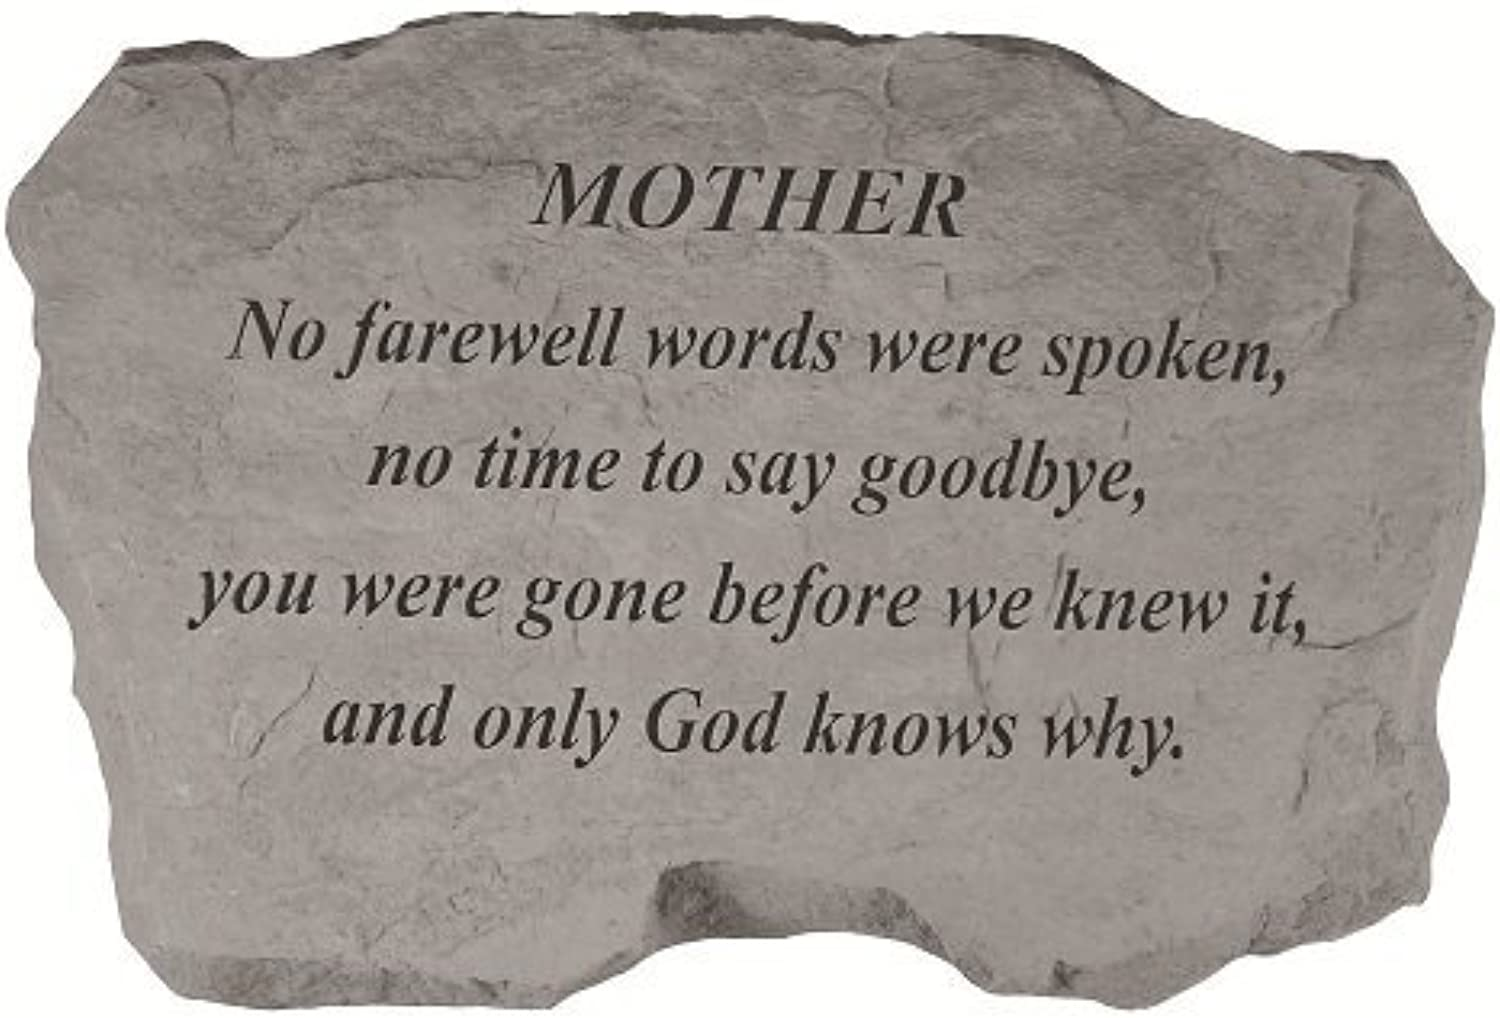 Kay Berry- Inc. 97820 Mother-No Farewell Words Were Spoken - Memorial - 16 Inches x 10.5 Inches x 1.5 Inches by Kay Berry Inc